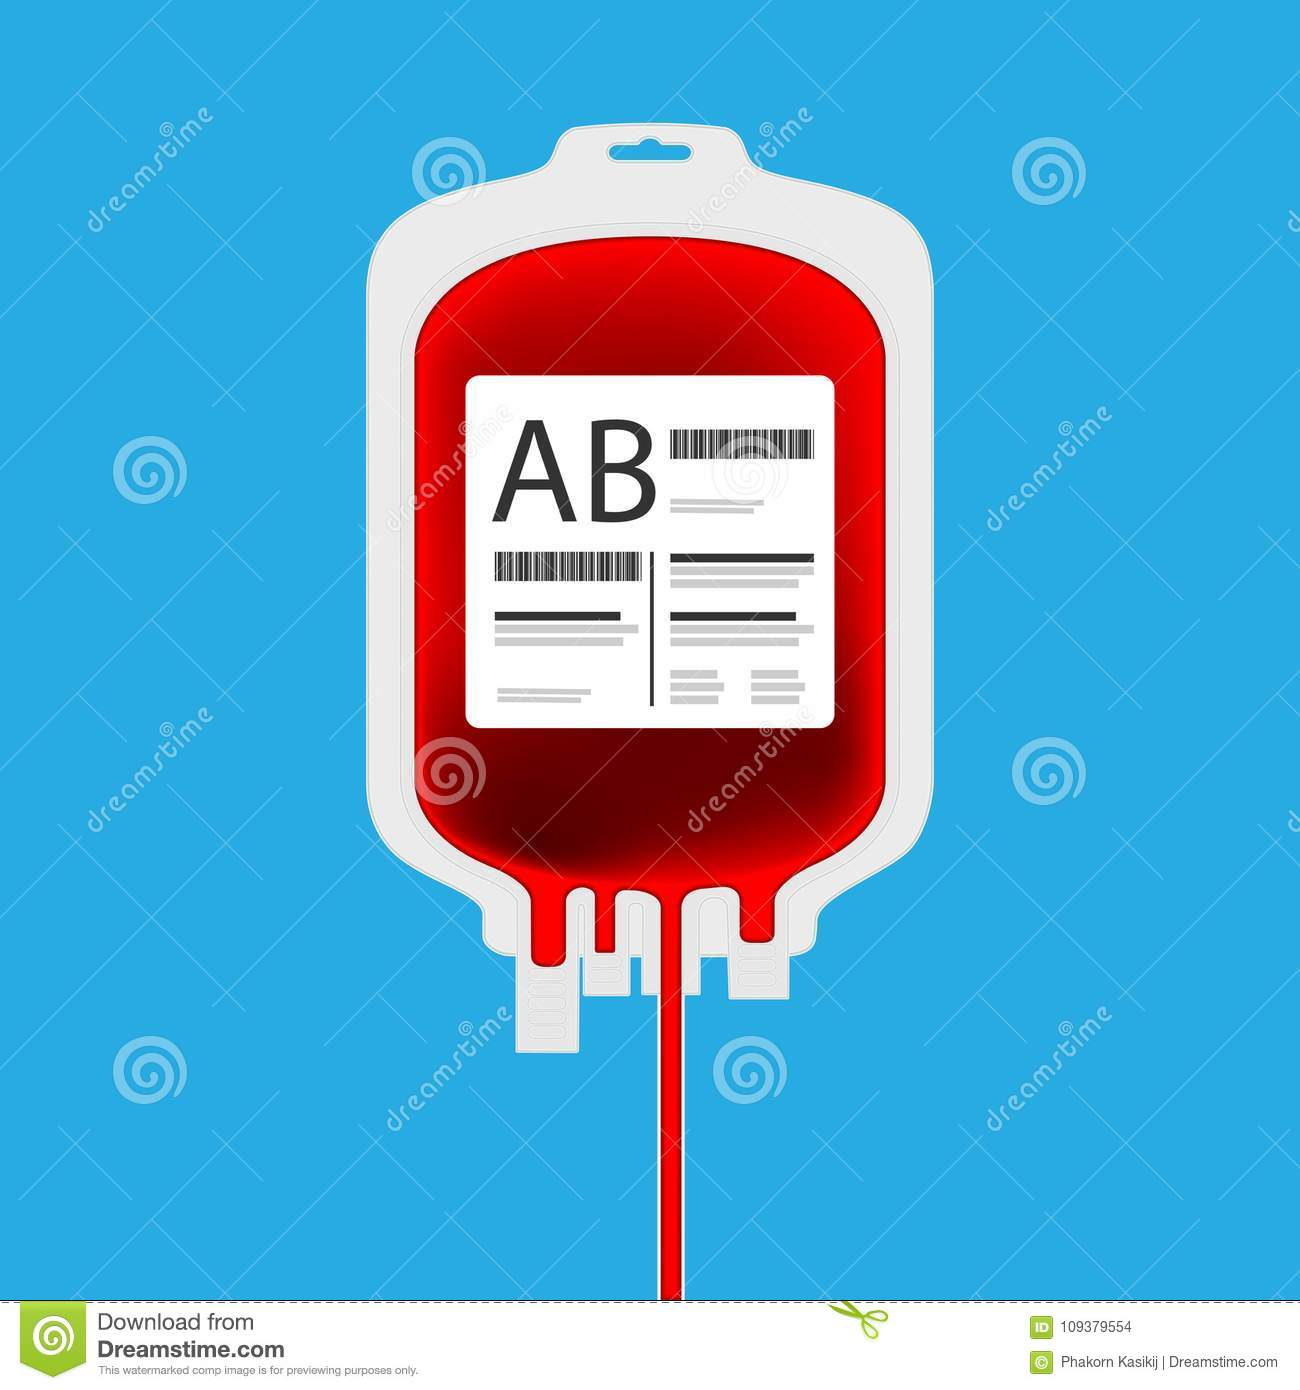 AB Plastic Blood Bag Isolated With Full Of Inside